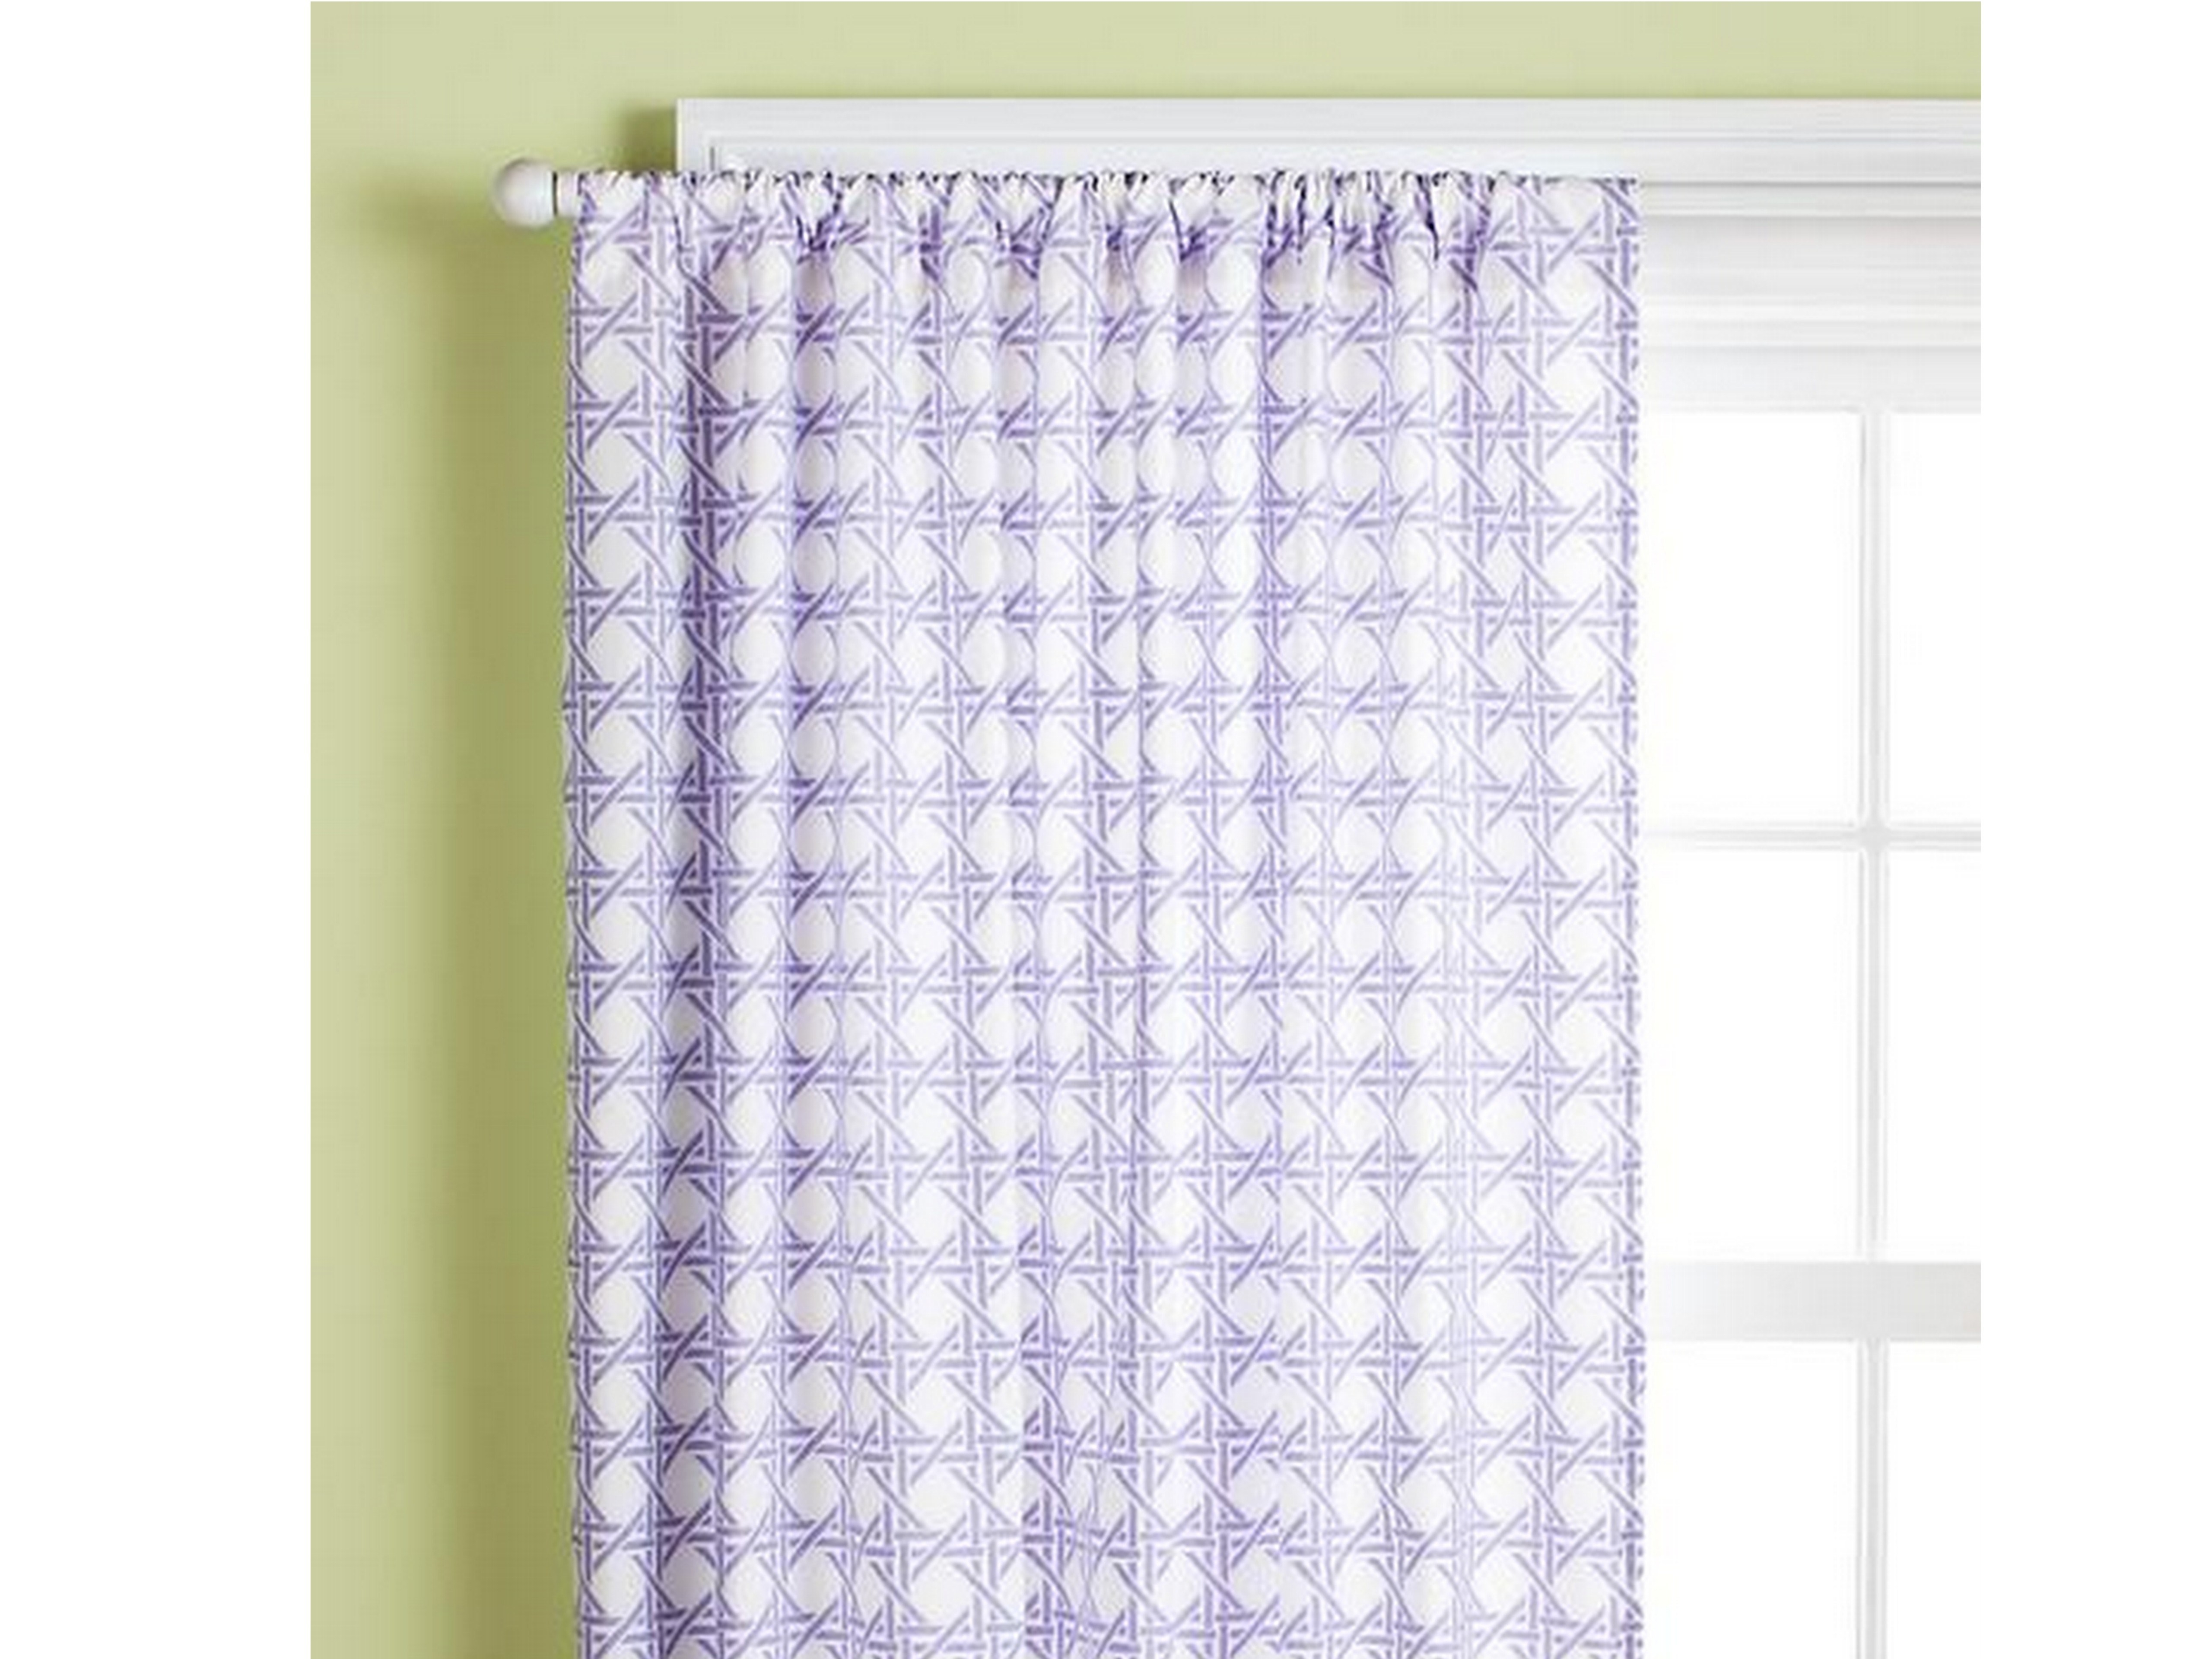 Lilac Nursery Curtains In Nursery Curtains (Image 8 of 15)